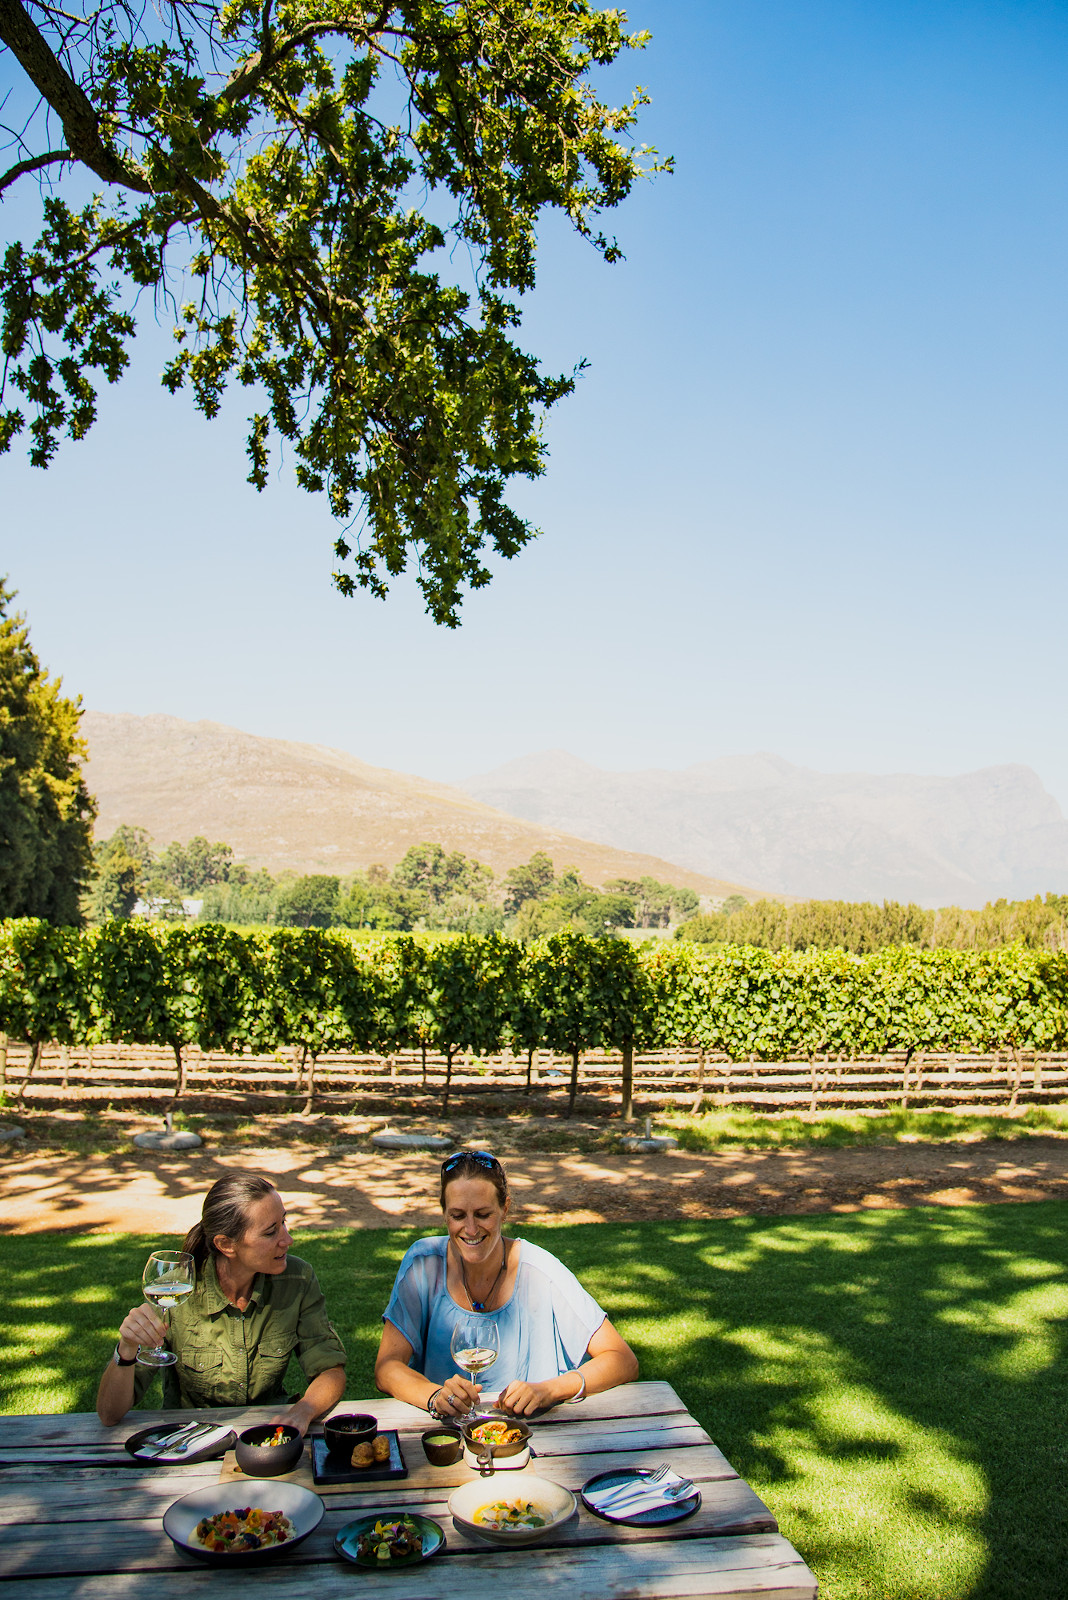 Writer and photographer Claire Lessiau & Marcella van Alphen having lunch in the vineyards at the Chefs' Warehouse Maison in Franschhoek